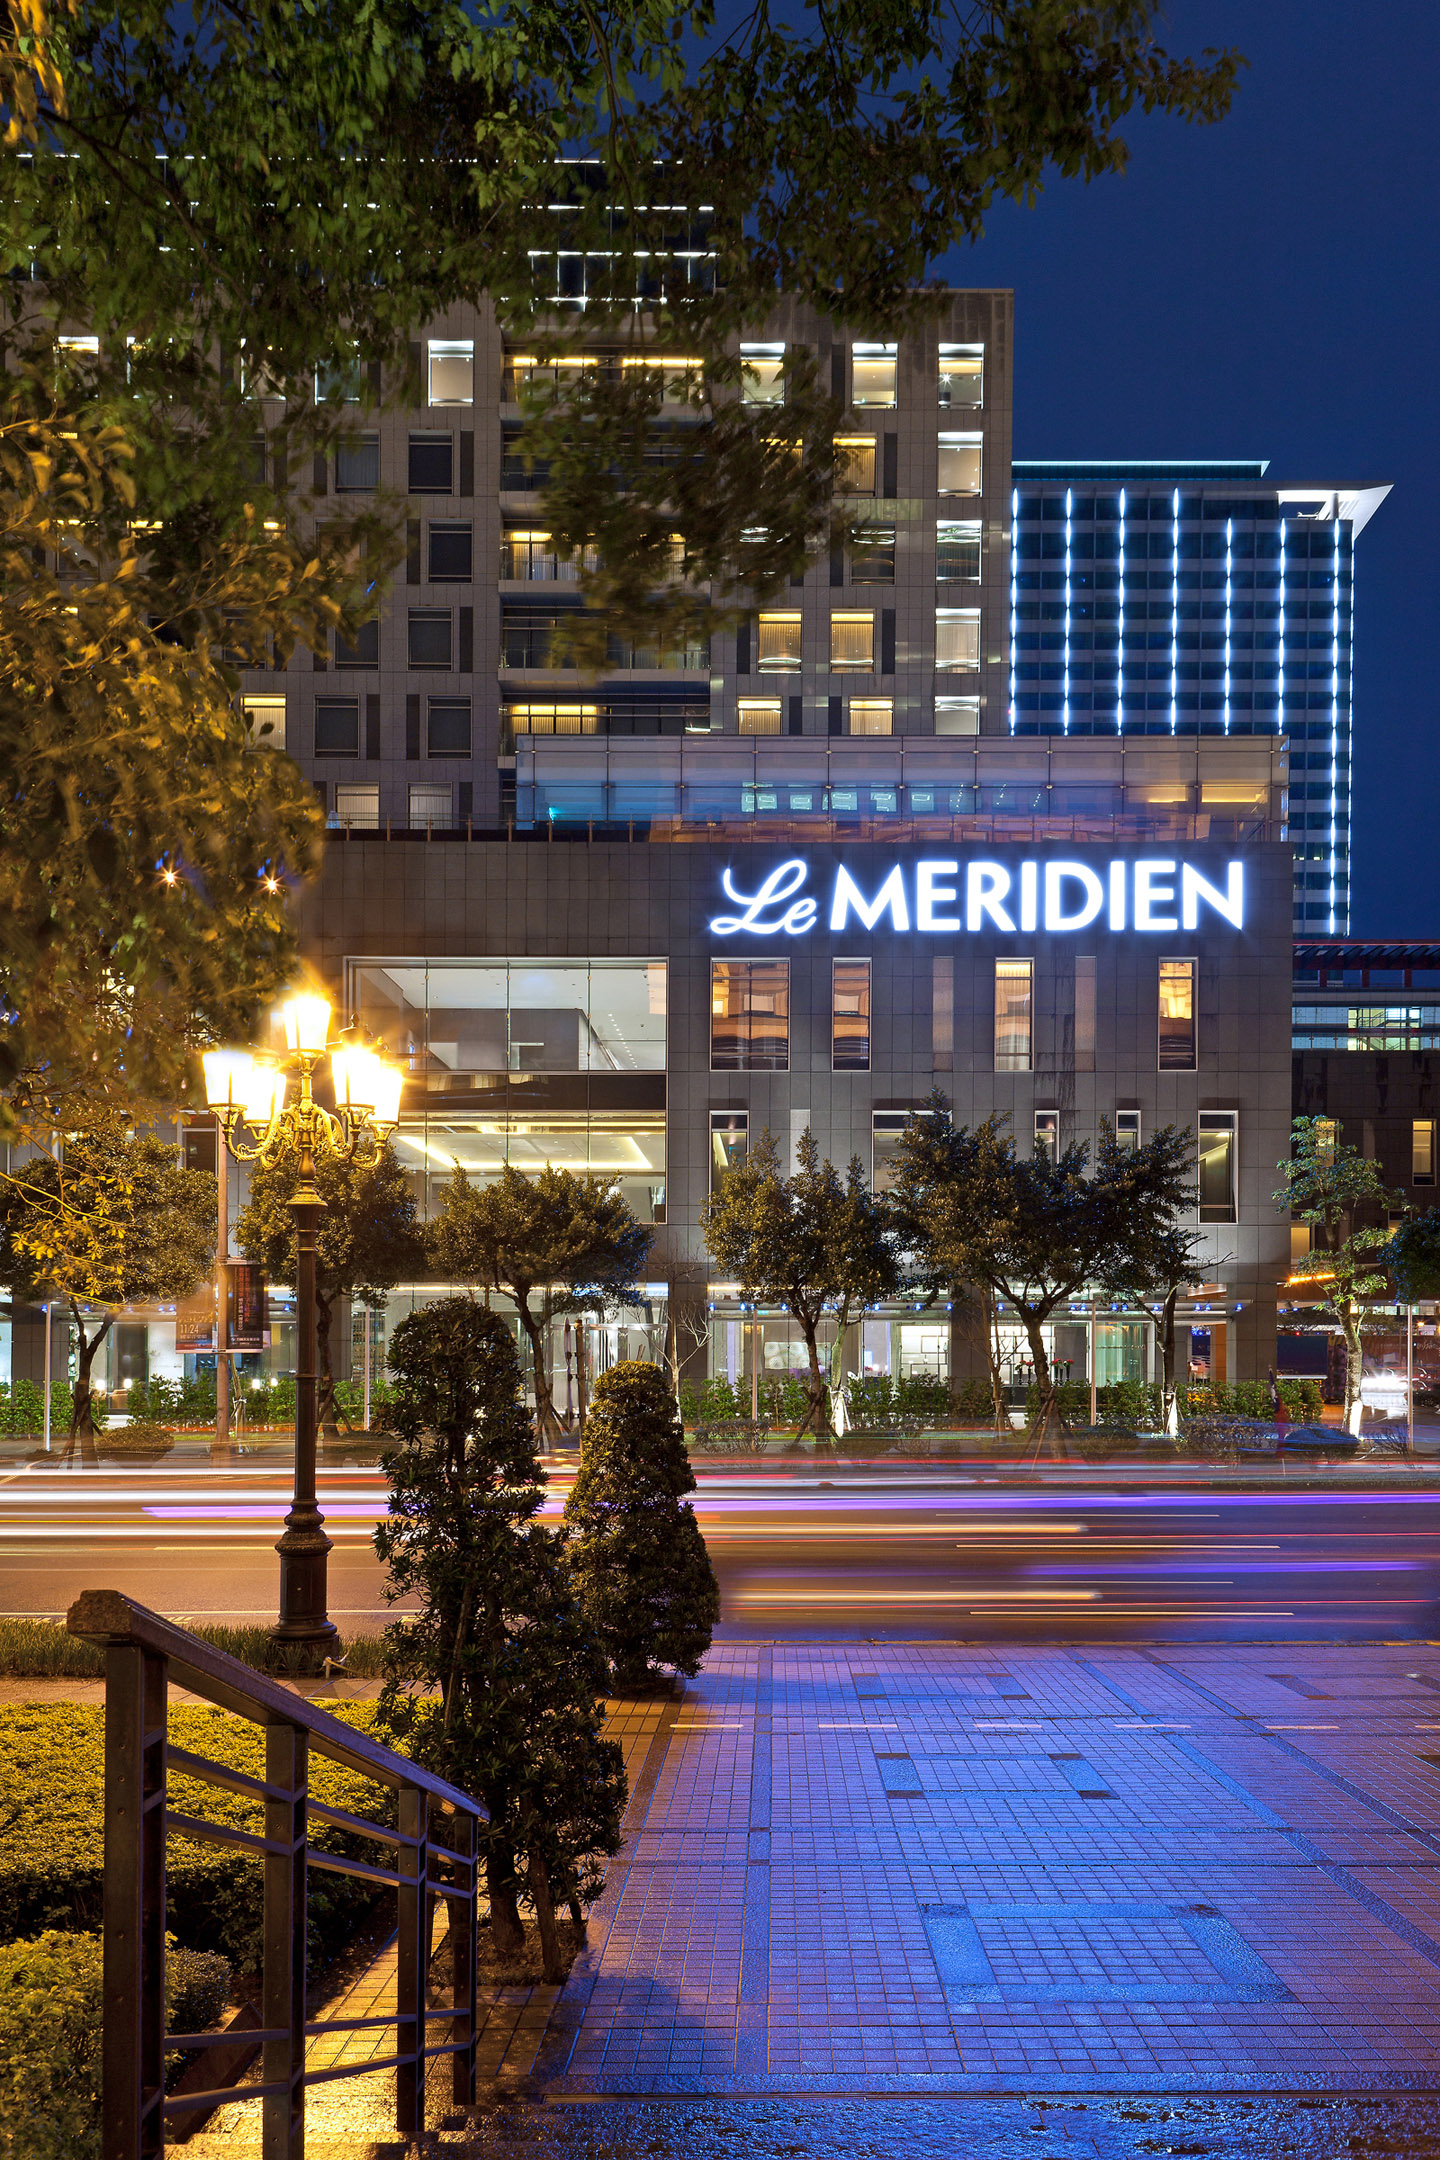 BRIGHTER FUTURE FOR PLANET IS THE GOAL AS LE MERIDIEN TAIPEI HOTEL GOES DARK FOR EARTH HOUR 2011